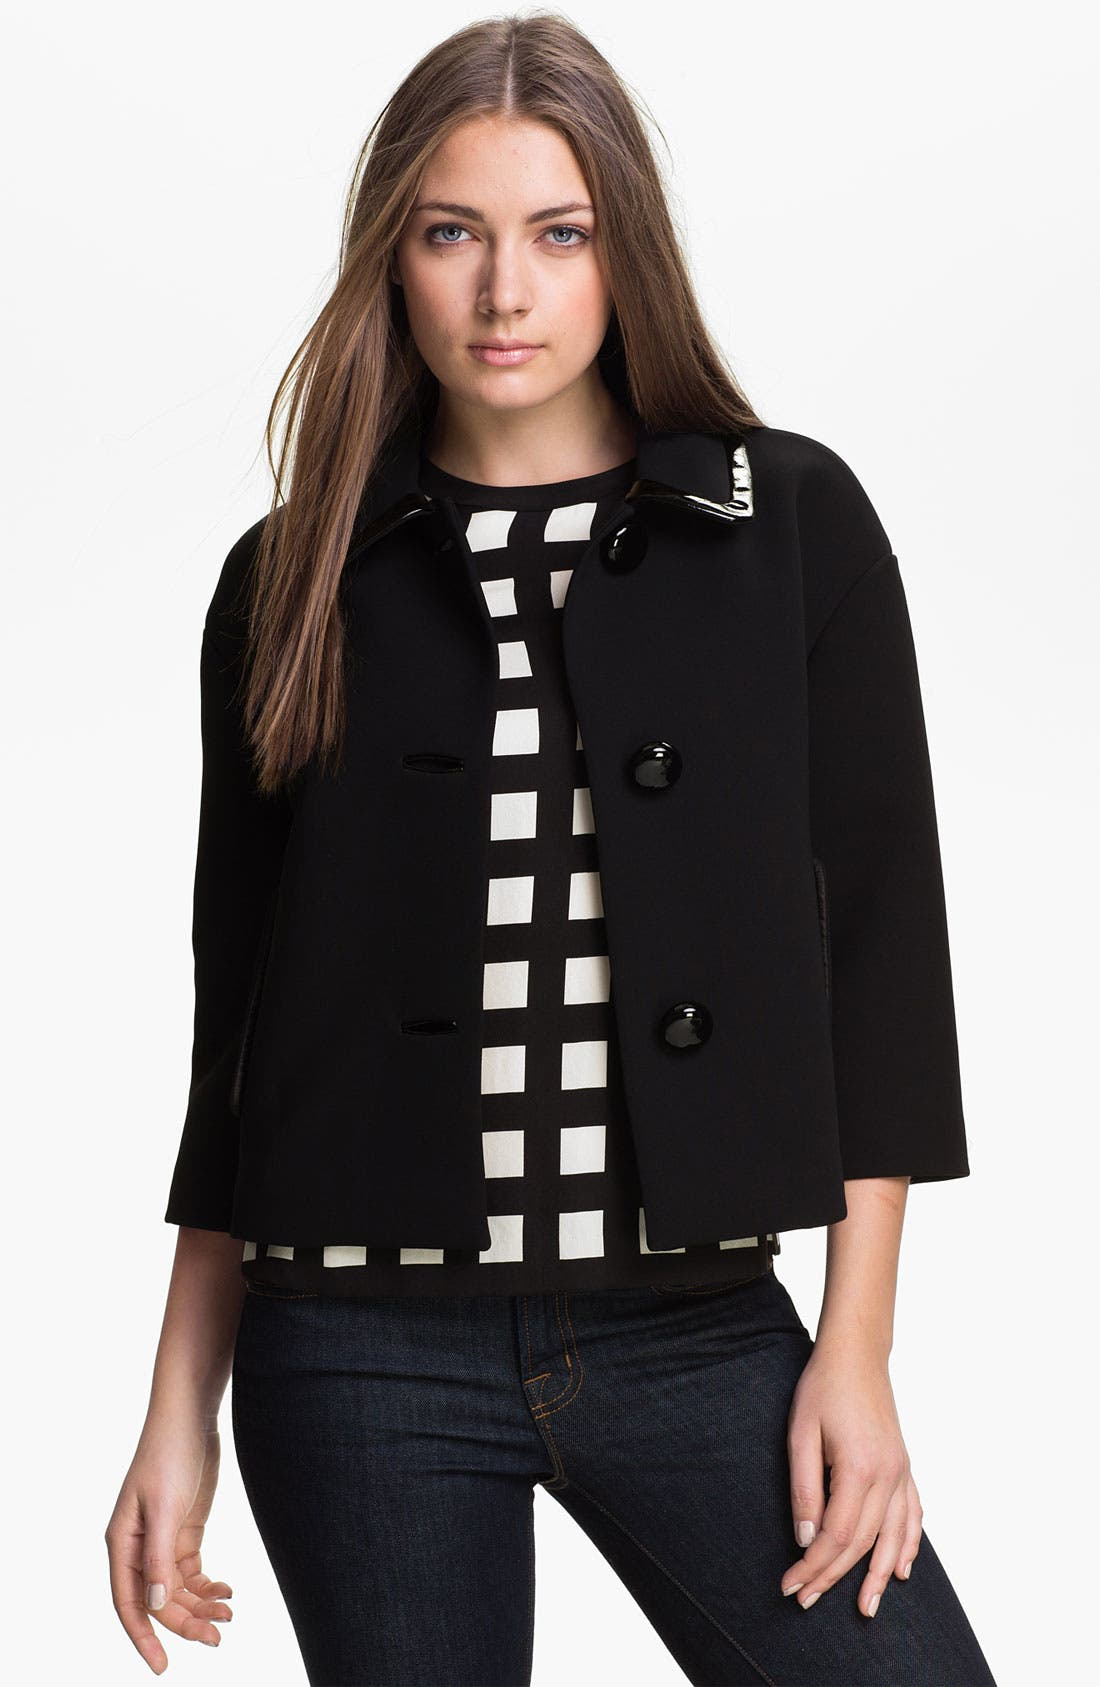 Alternate Image 1 Selected - kate spade new york 'ellie' crop jacket